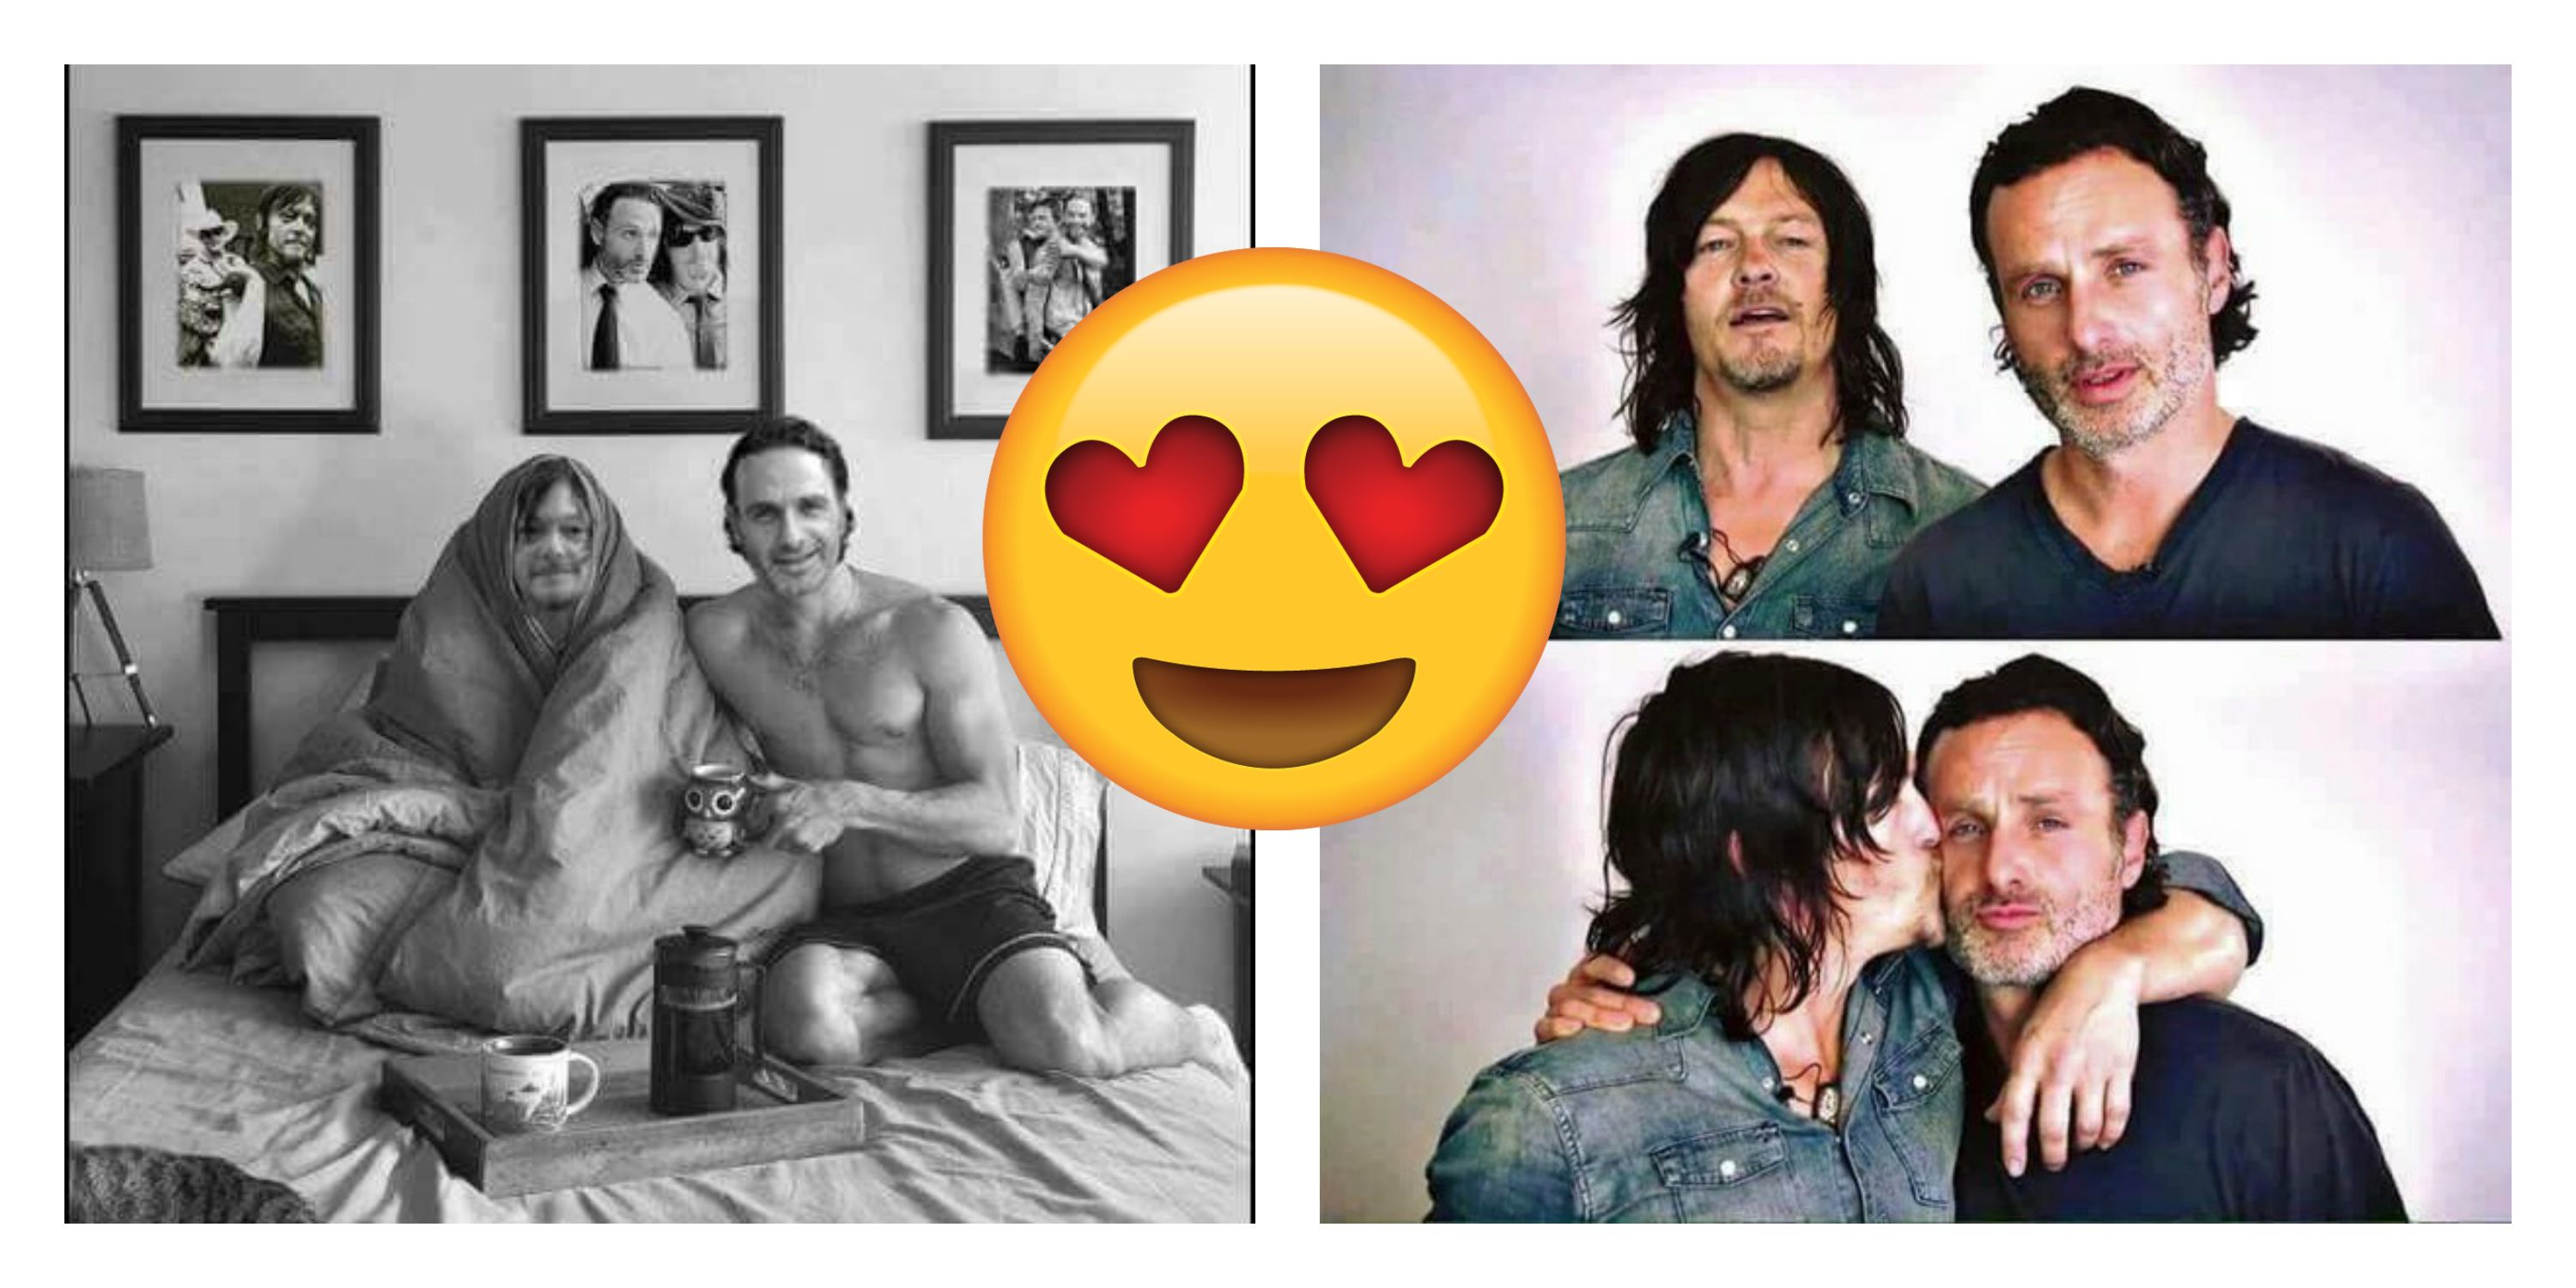 15 Must-See Photos That Sum Up Andrew Lincoln's and Norman Reedus' Bromance